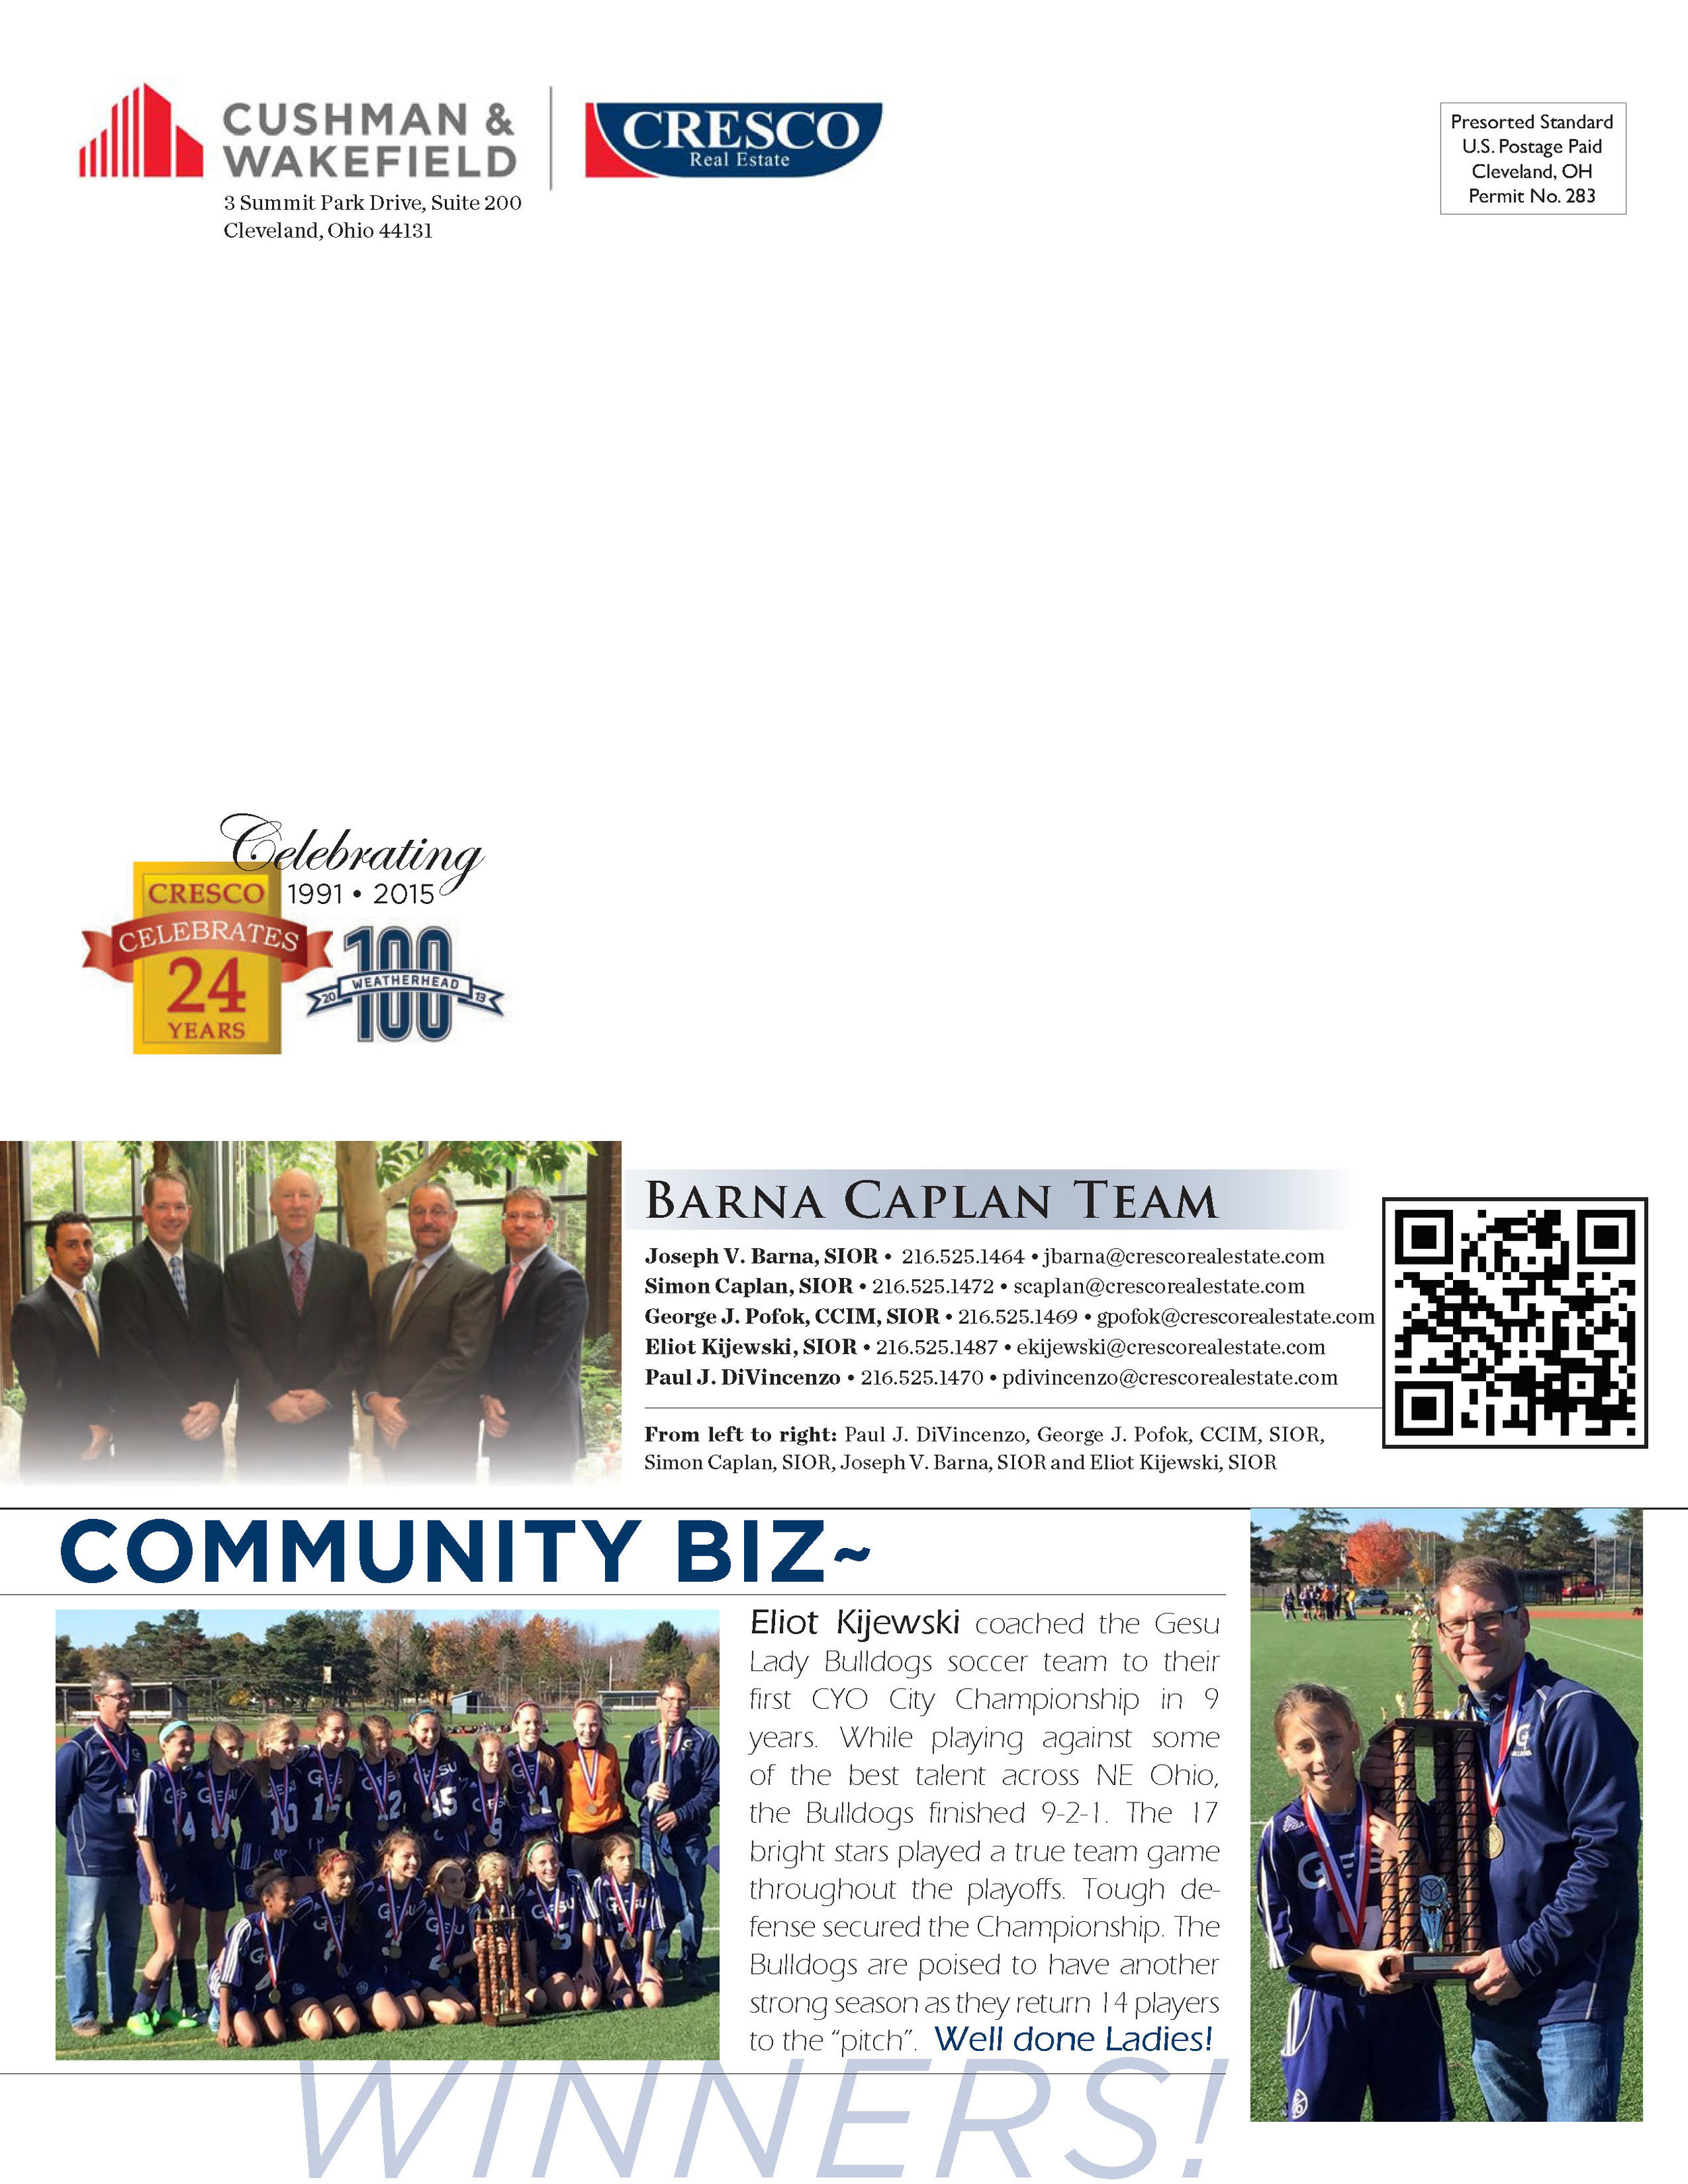 BarnaCaplan_Newsletter_Fall2015_Page_4.jpg